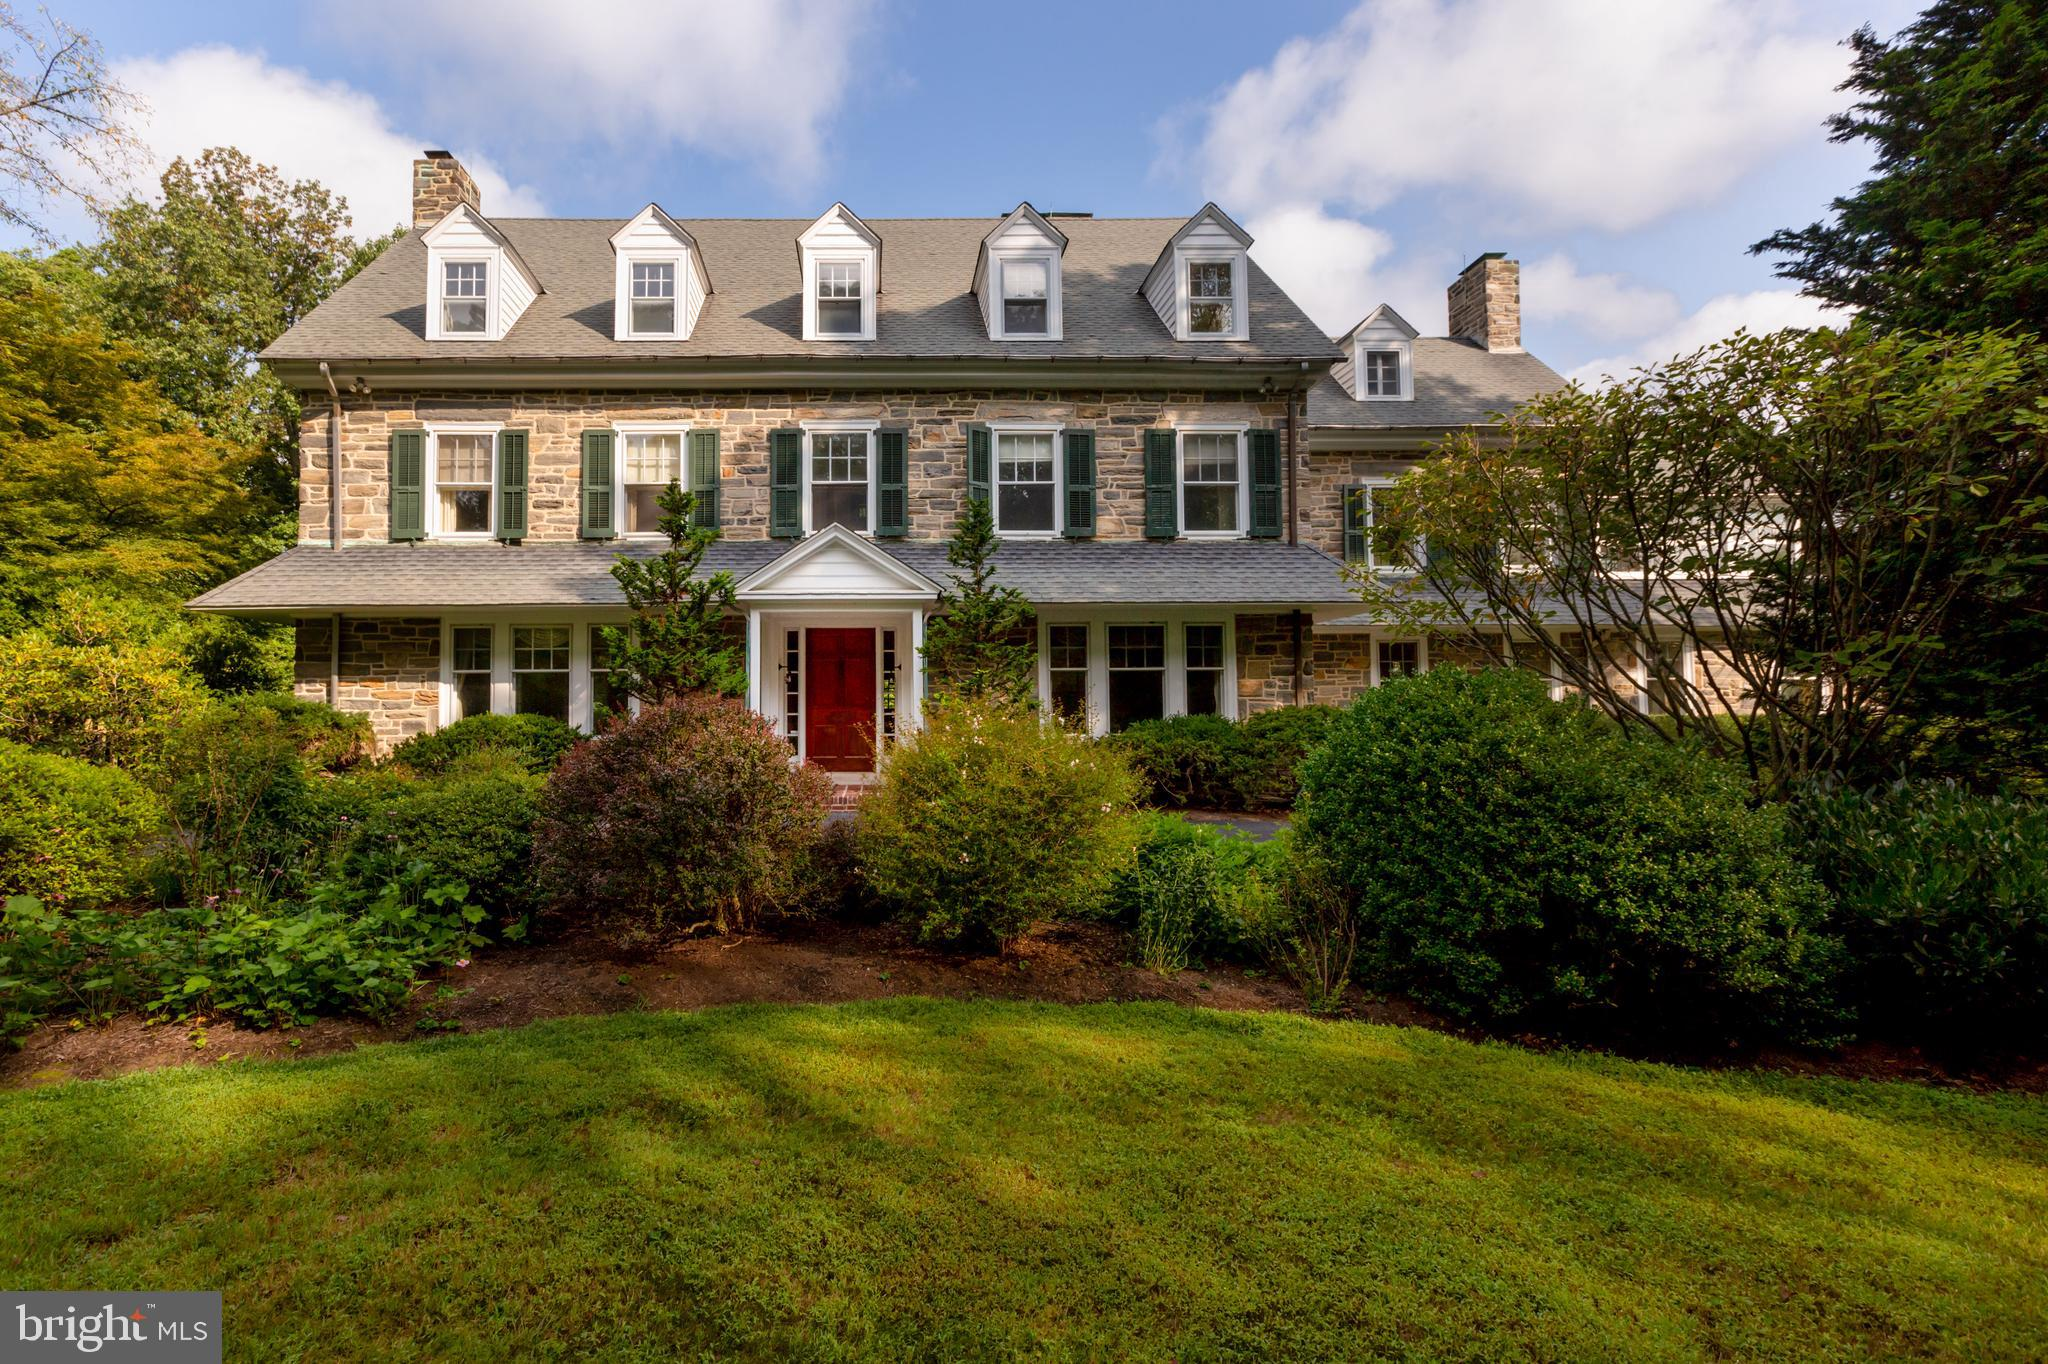 526 COLLEGE AVENUE, HAVERFORD, PA 19041